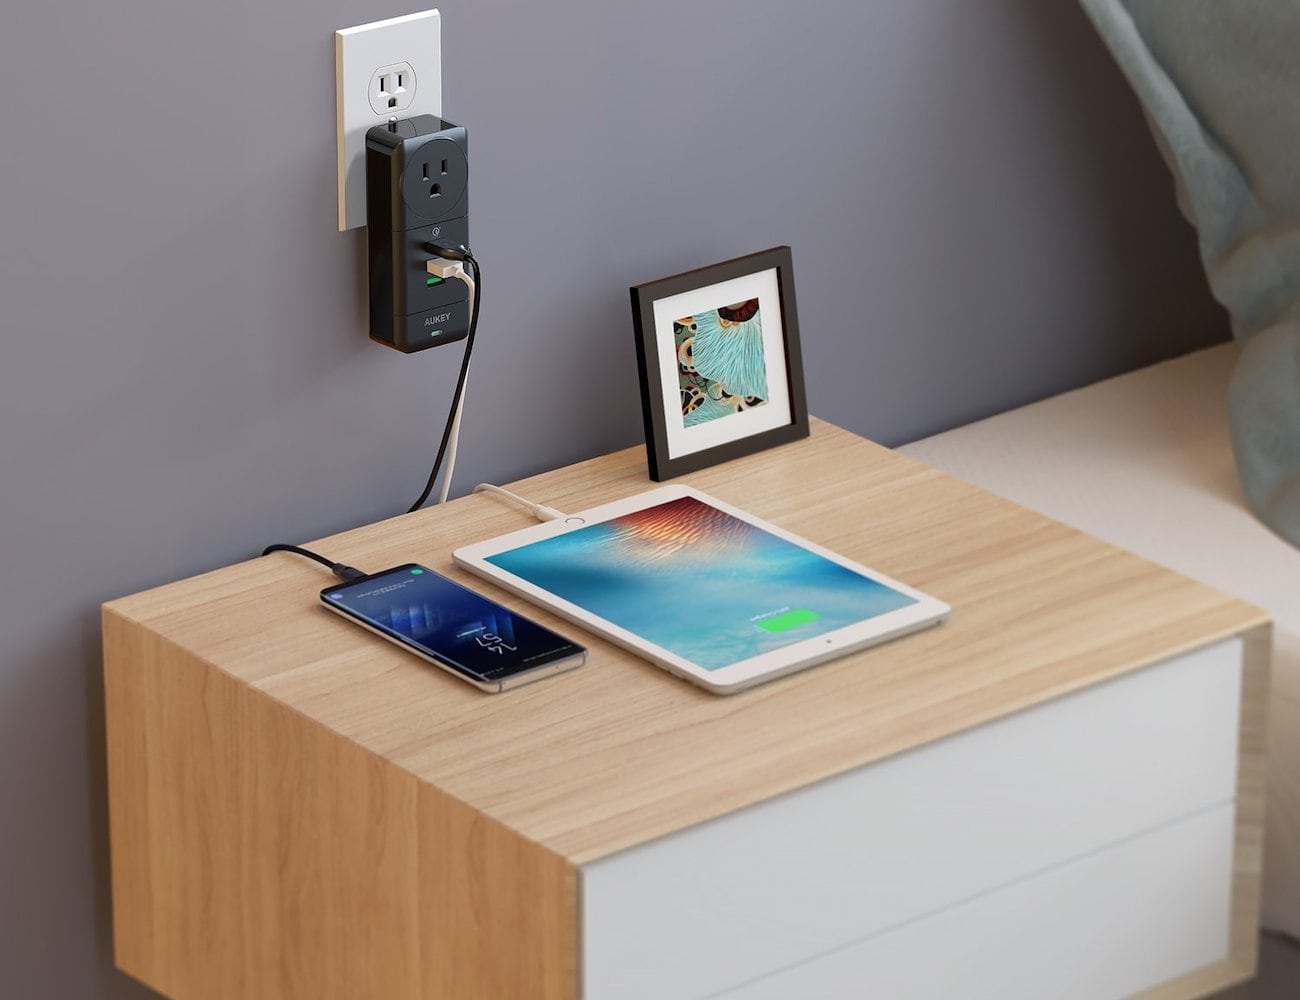 Aukey Rotatable USB Wall Outlet charges four devices with one plug